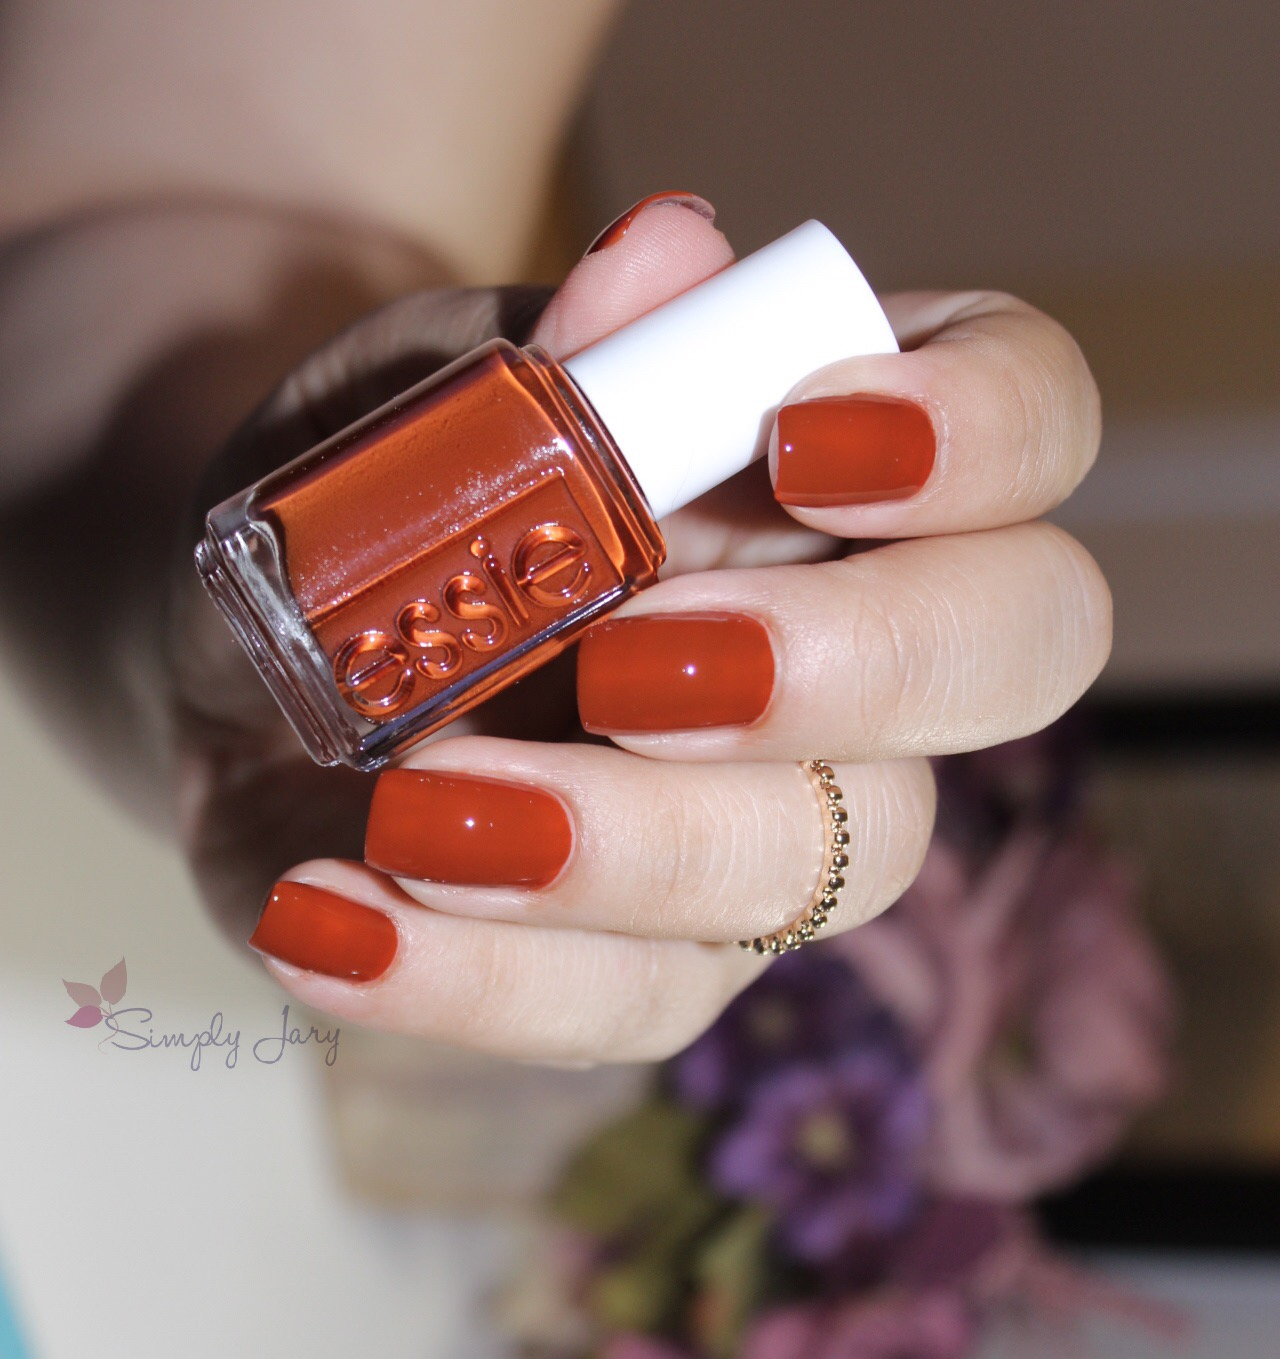 Simply jary essie 39 s kimono over fall 2016 swatches for Playing koi